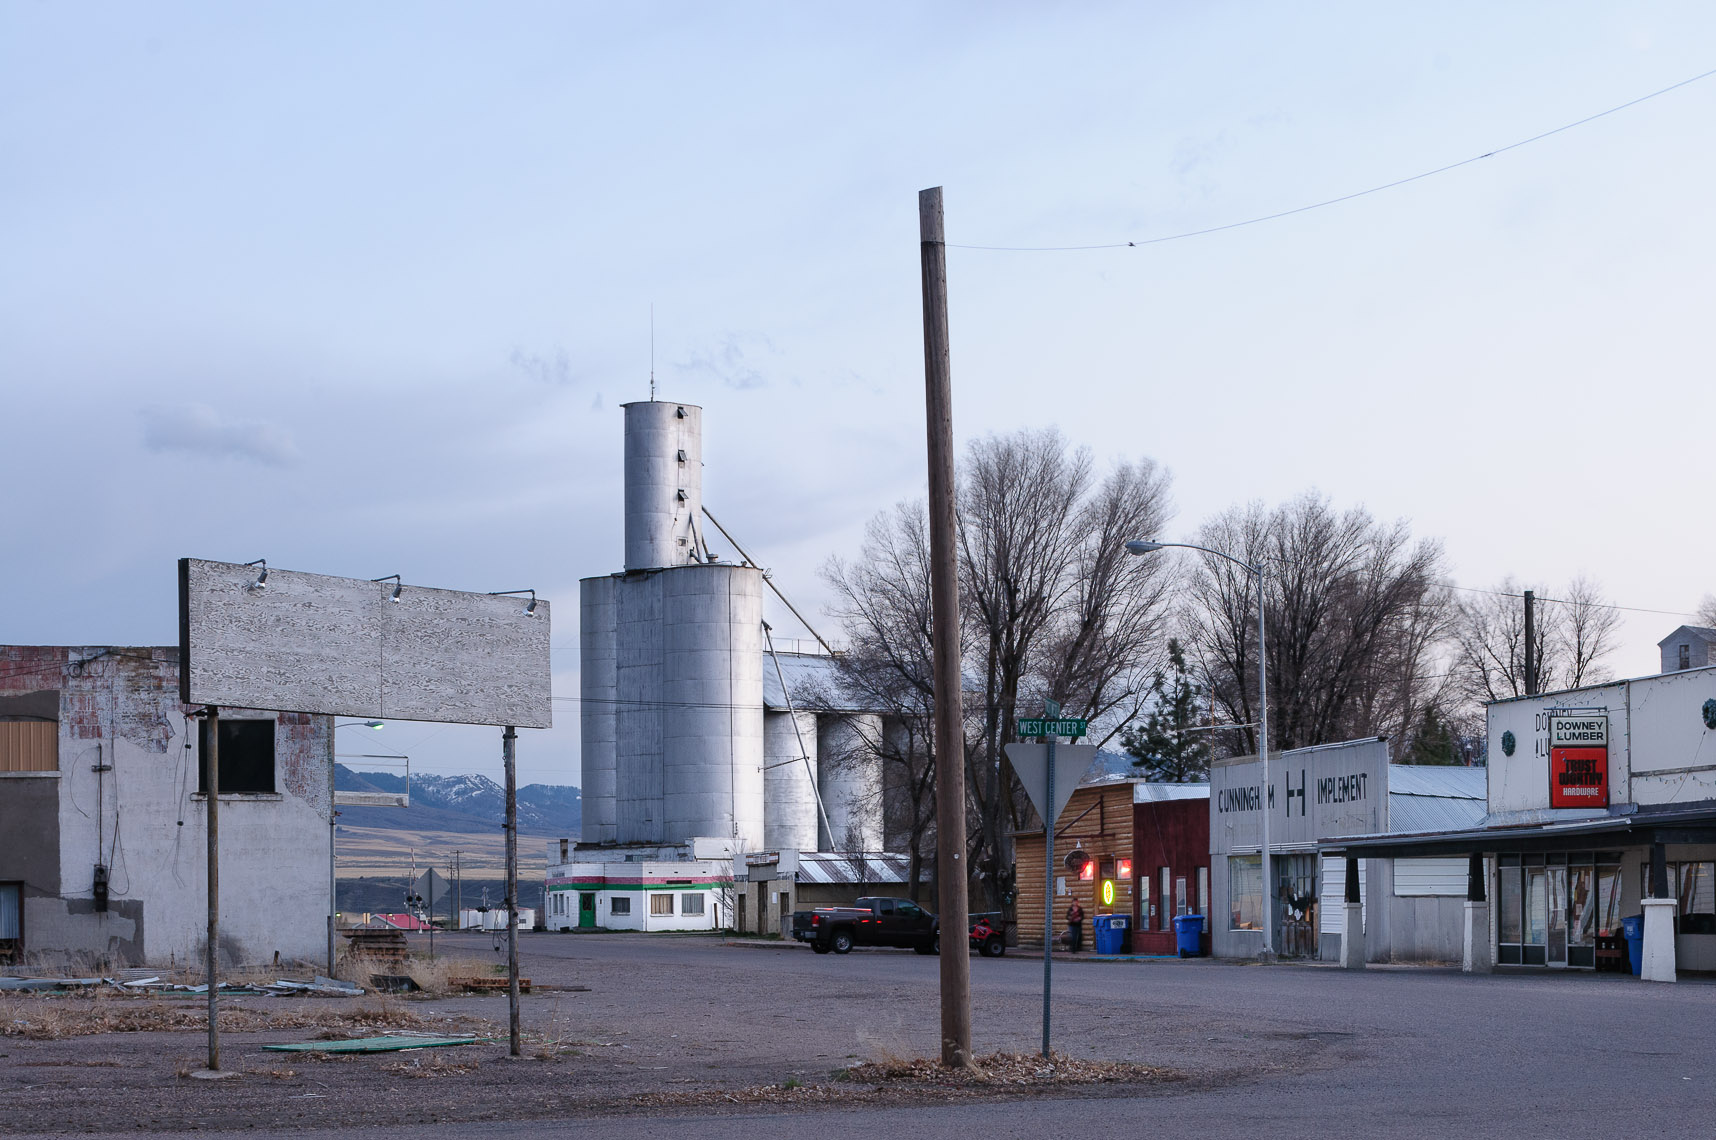 20120405_Downey_Idaho_046-DUP.jpg